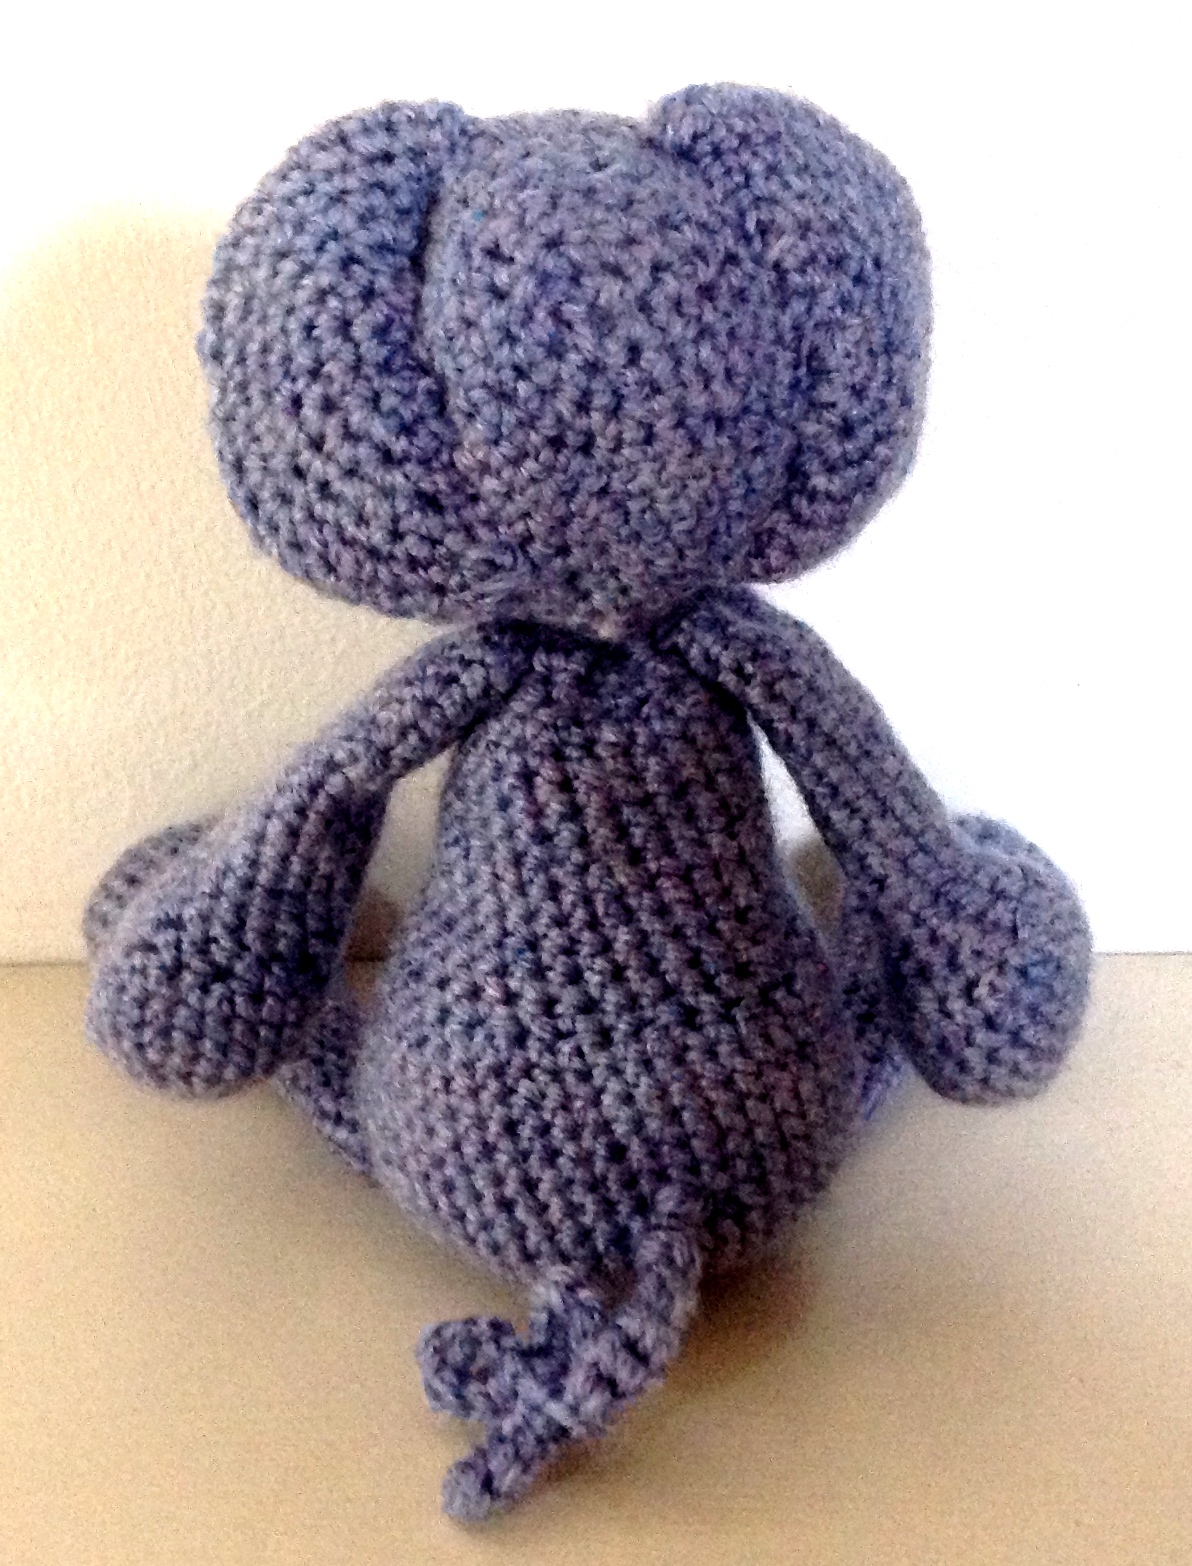 The Sweetest Crochet Elephant Patterns To Try | The WHOot | 1566x1192